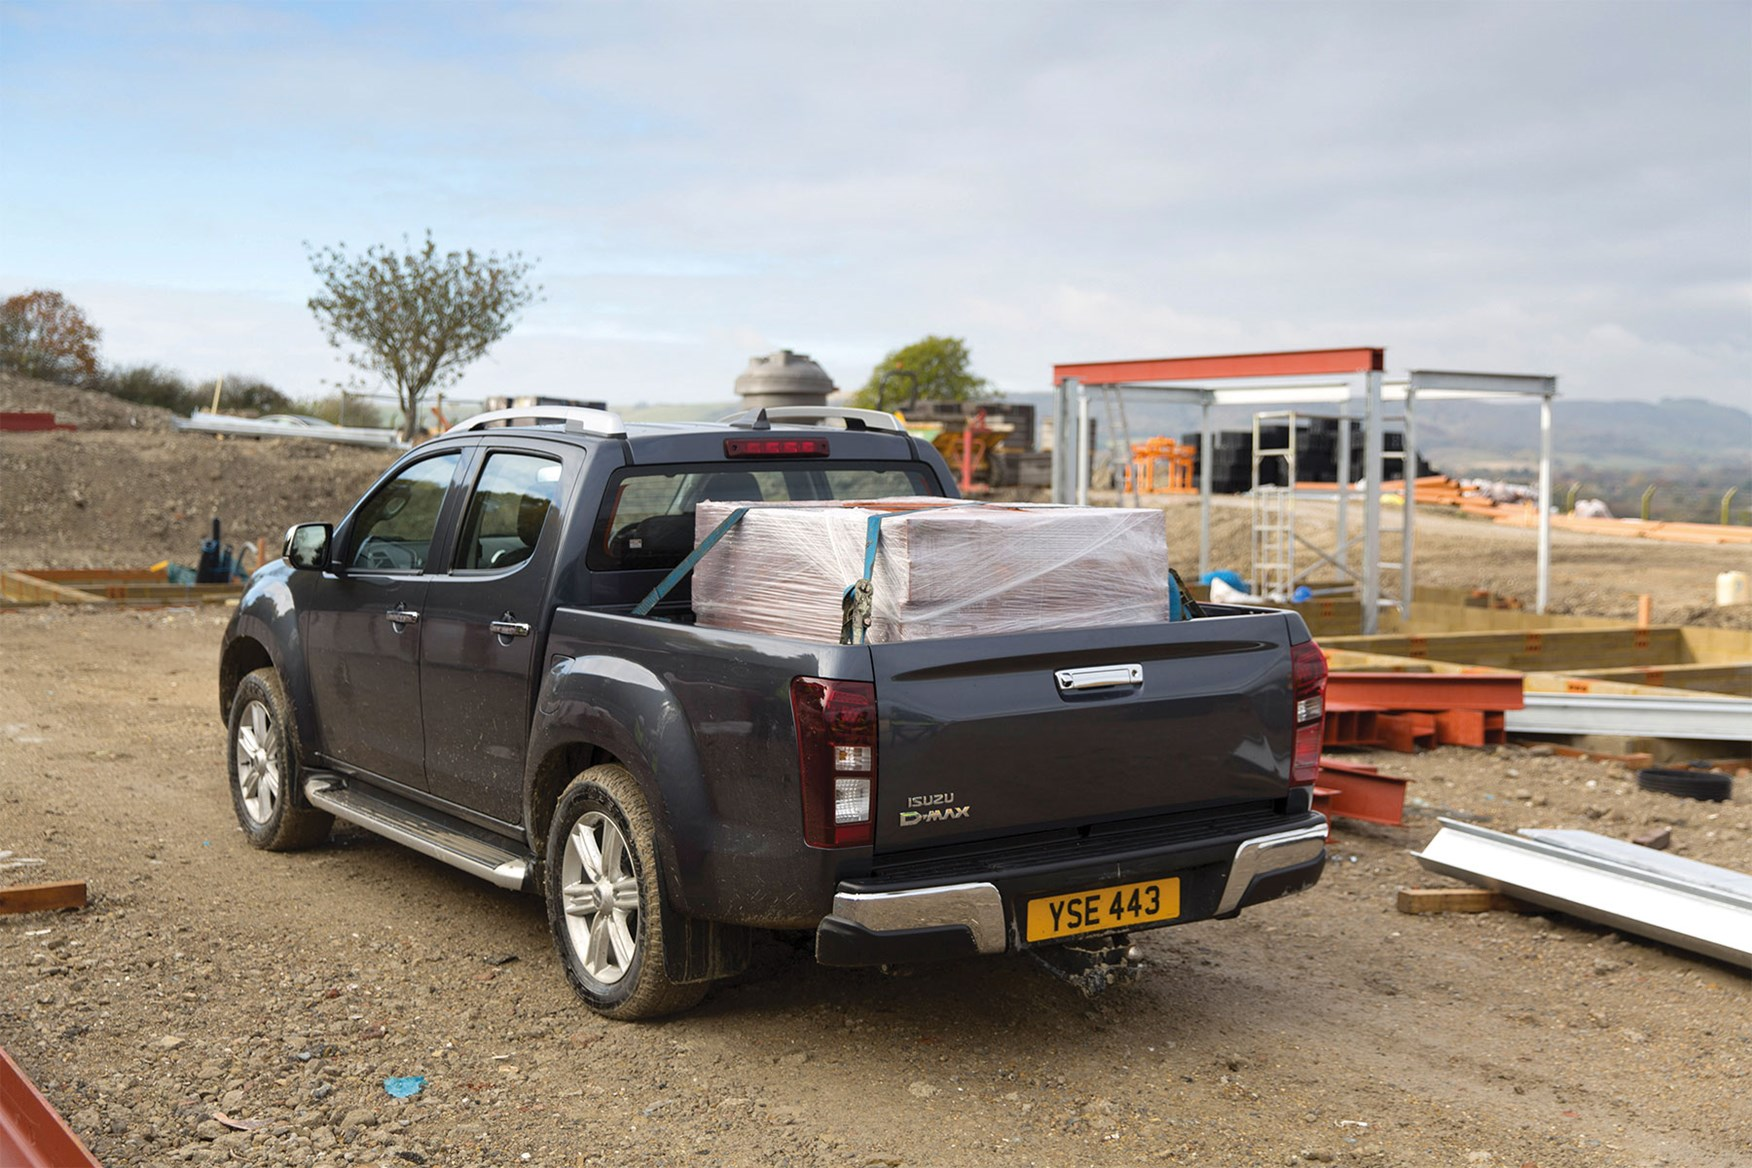 Isuzu D-Max pickup dimensions (2012-on), capacity, payload